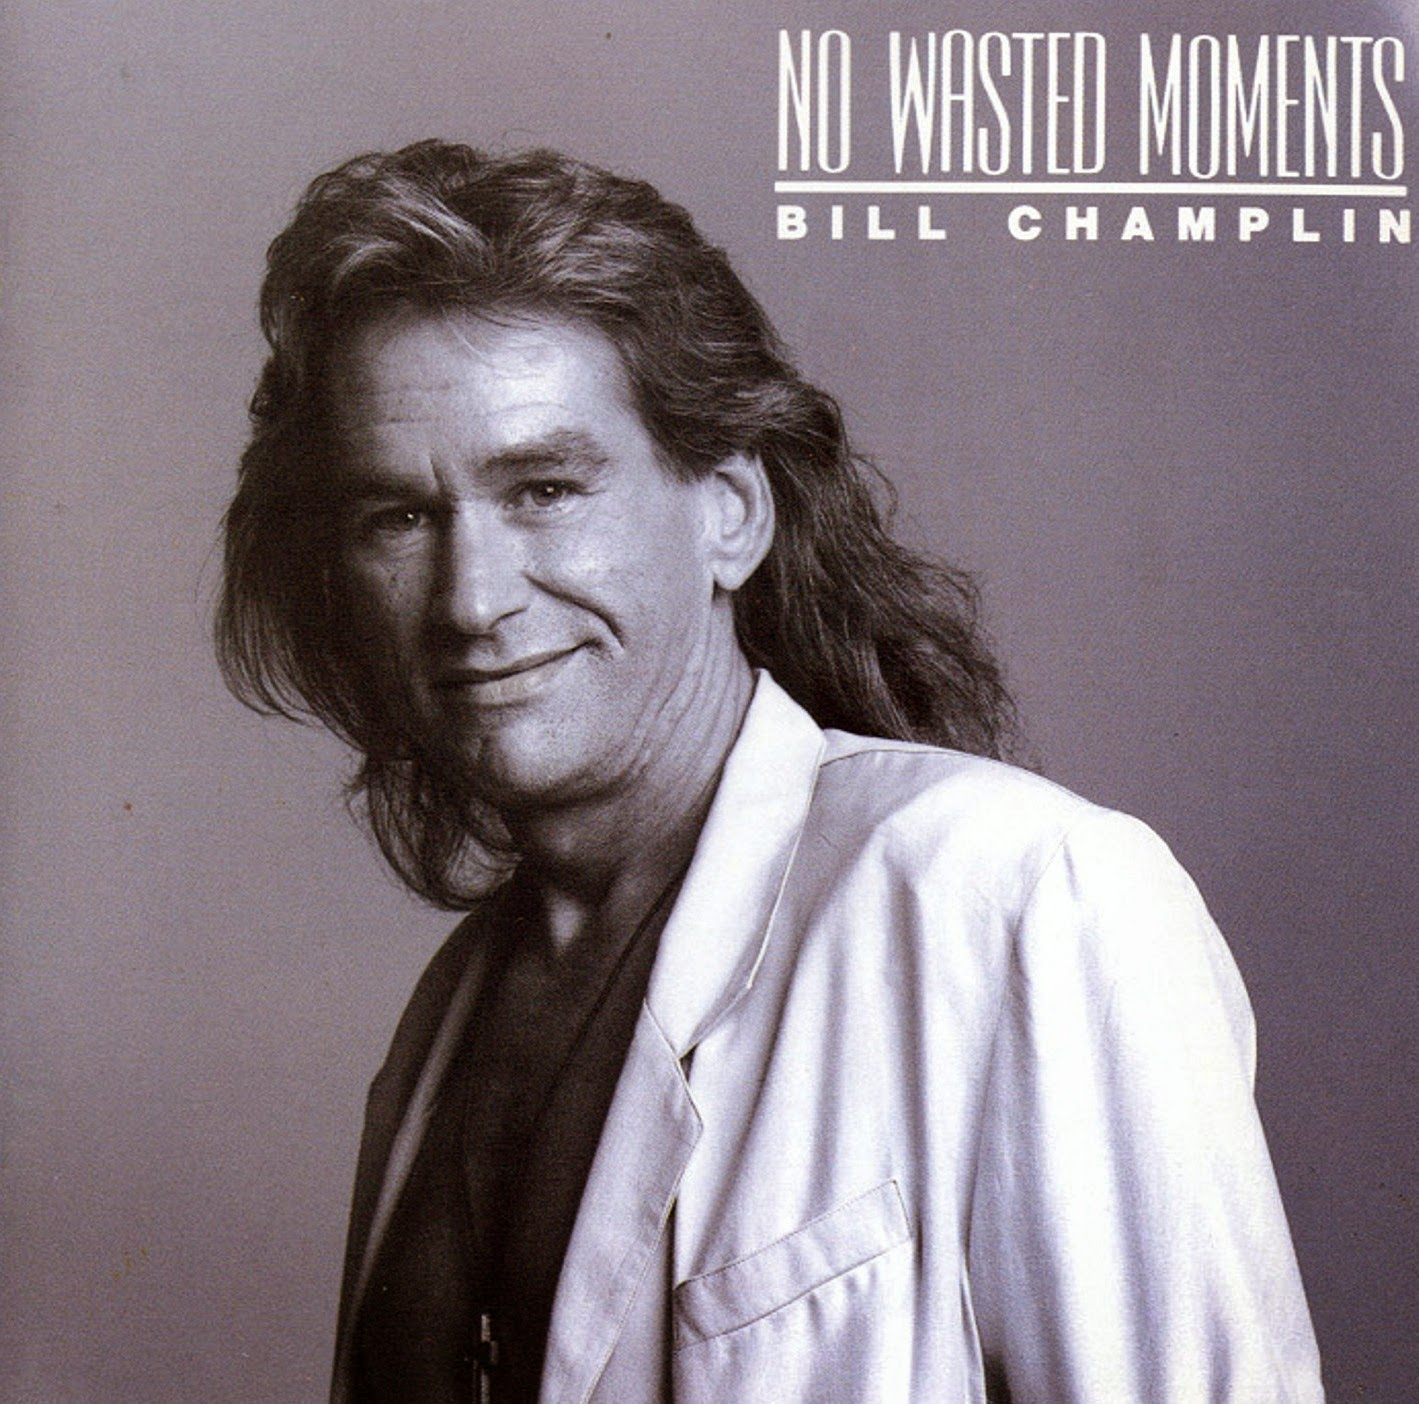 Bill Champlin No wasted moments 1990 aor melodic rock westcoast